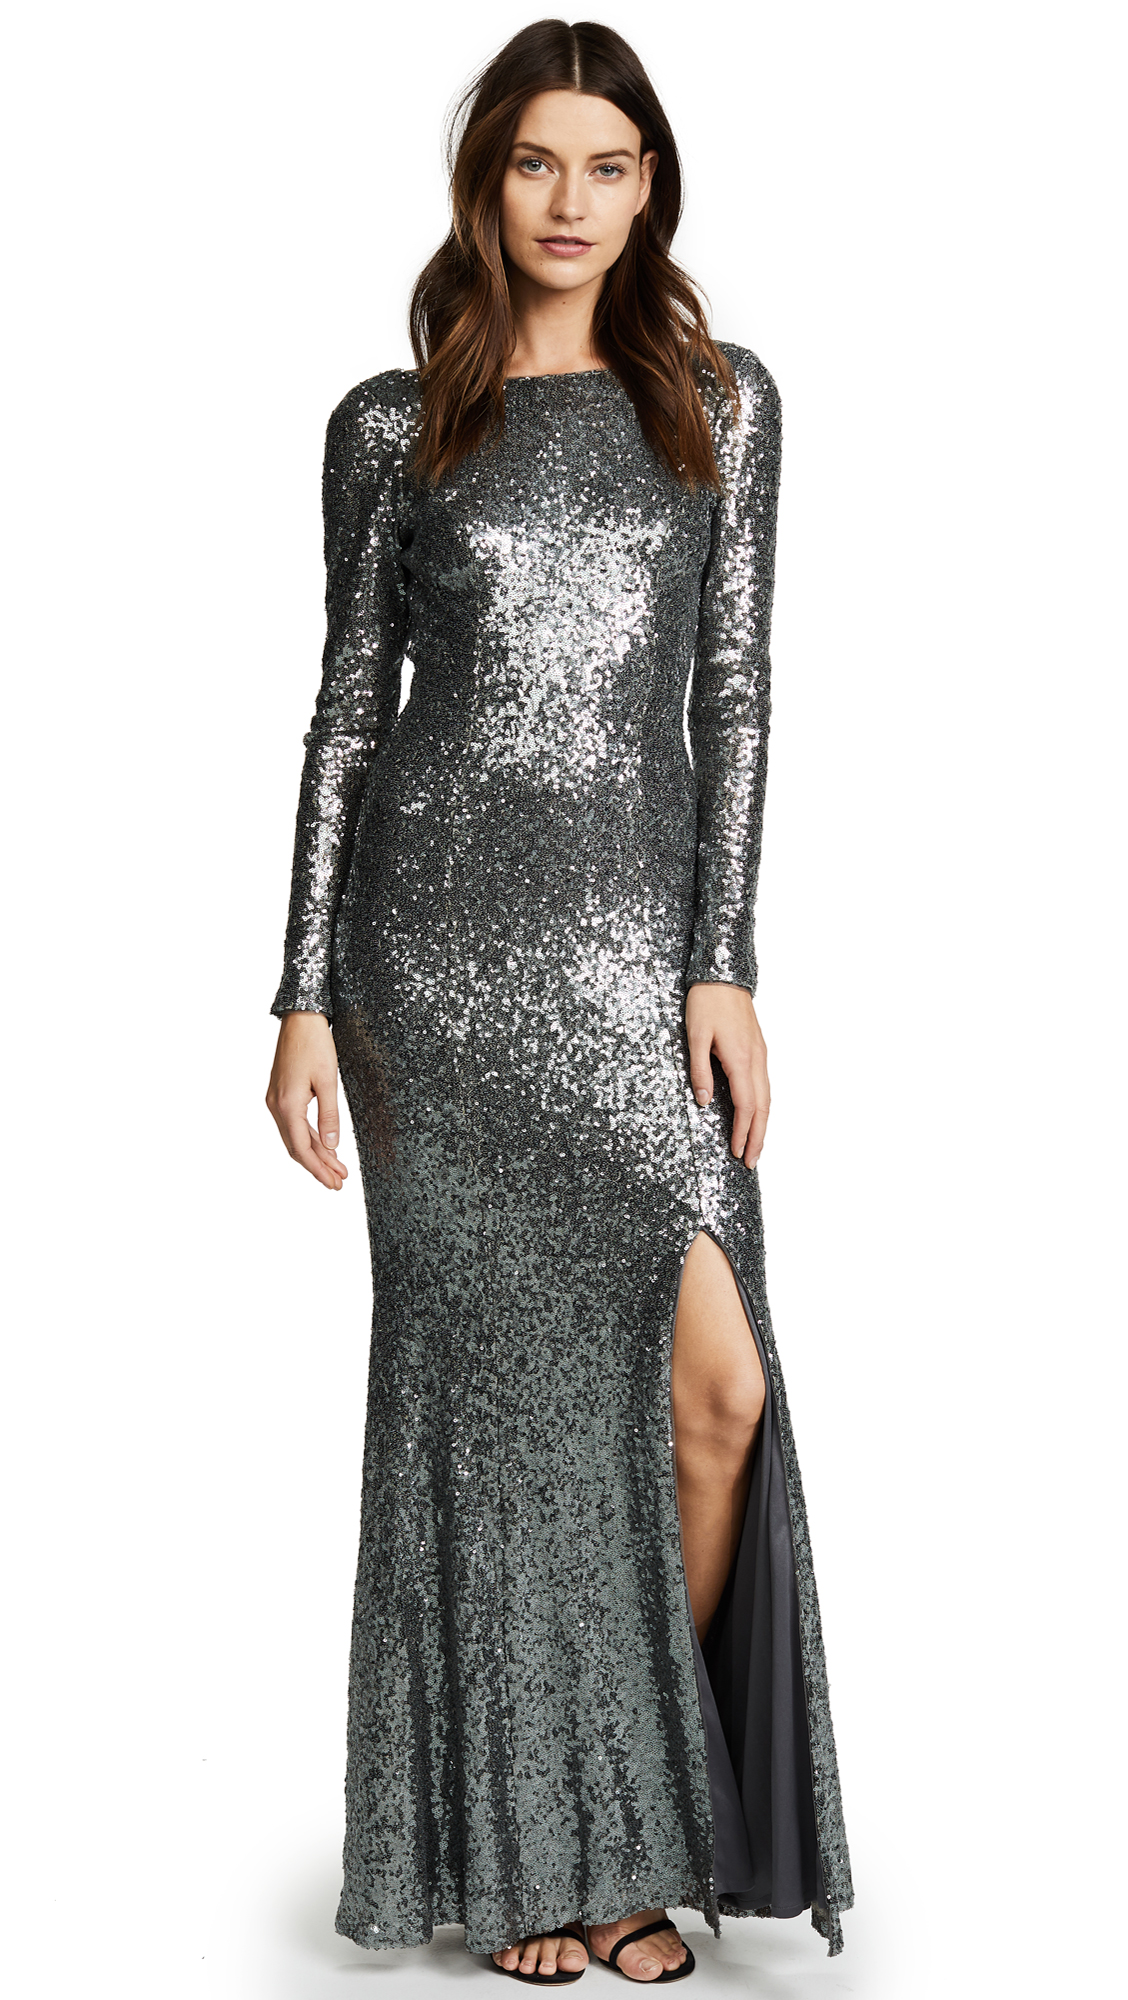 Theia Giselle Bateau Sequin Gown - Smoke